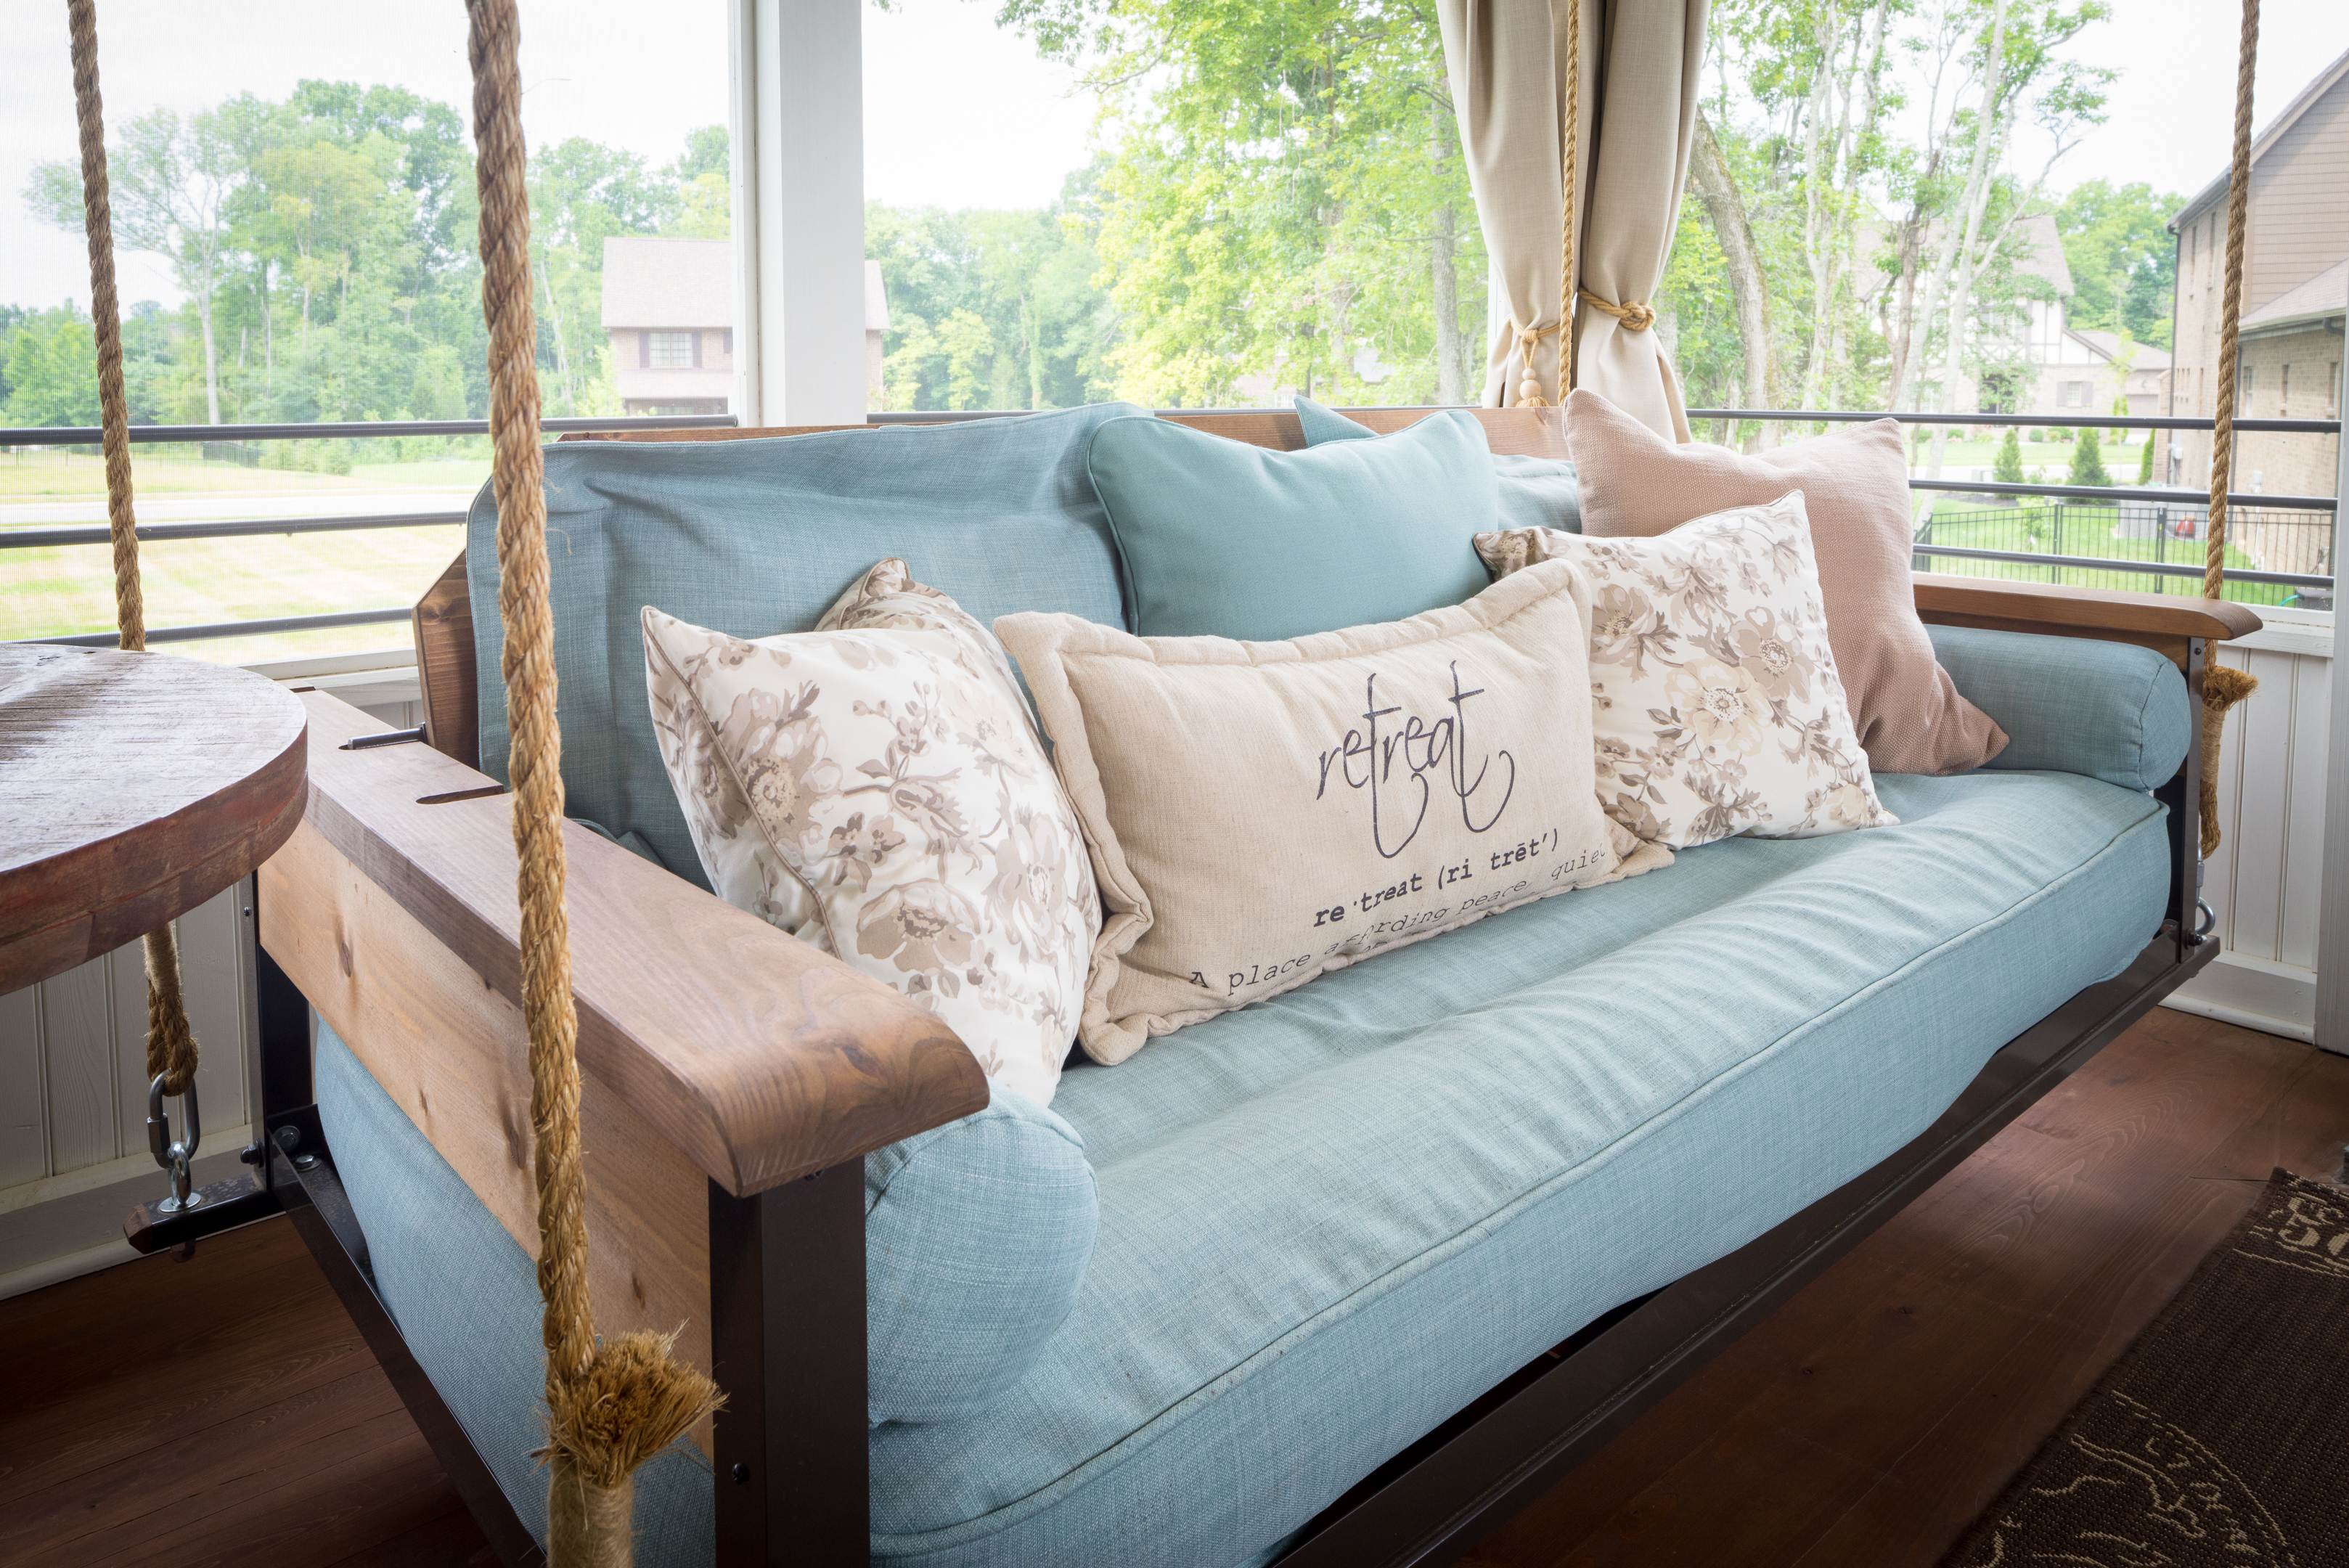 Unique porch swing with cushioning resembling denim